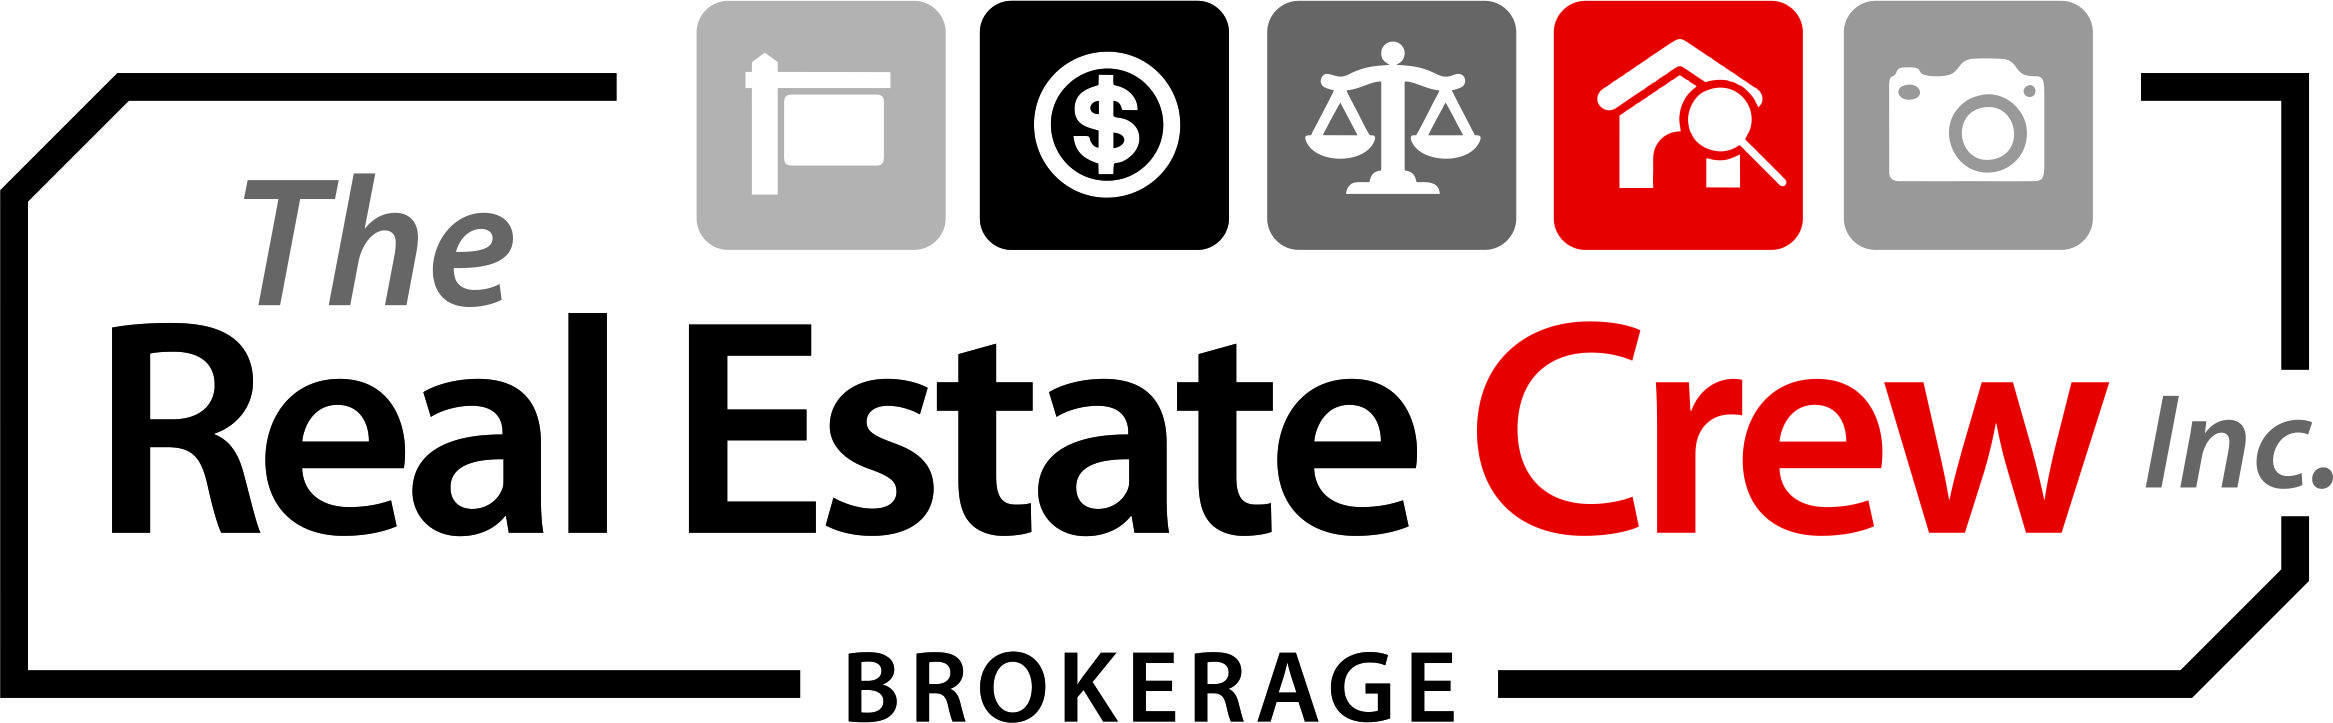 THE REAL ESTATE CREW INC. Brokerage*